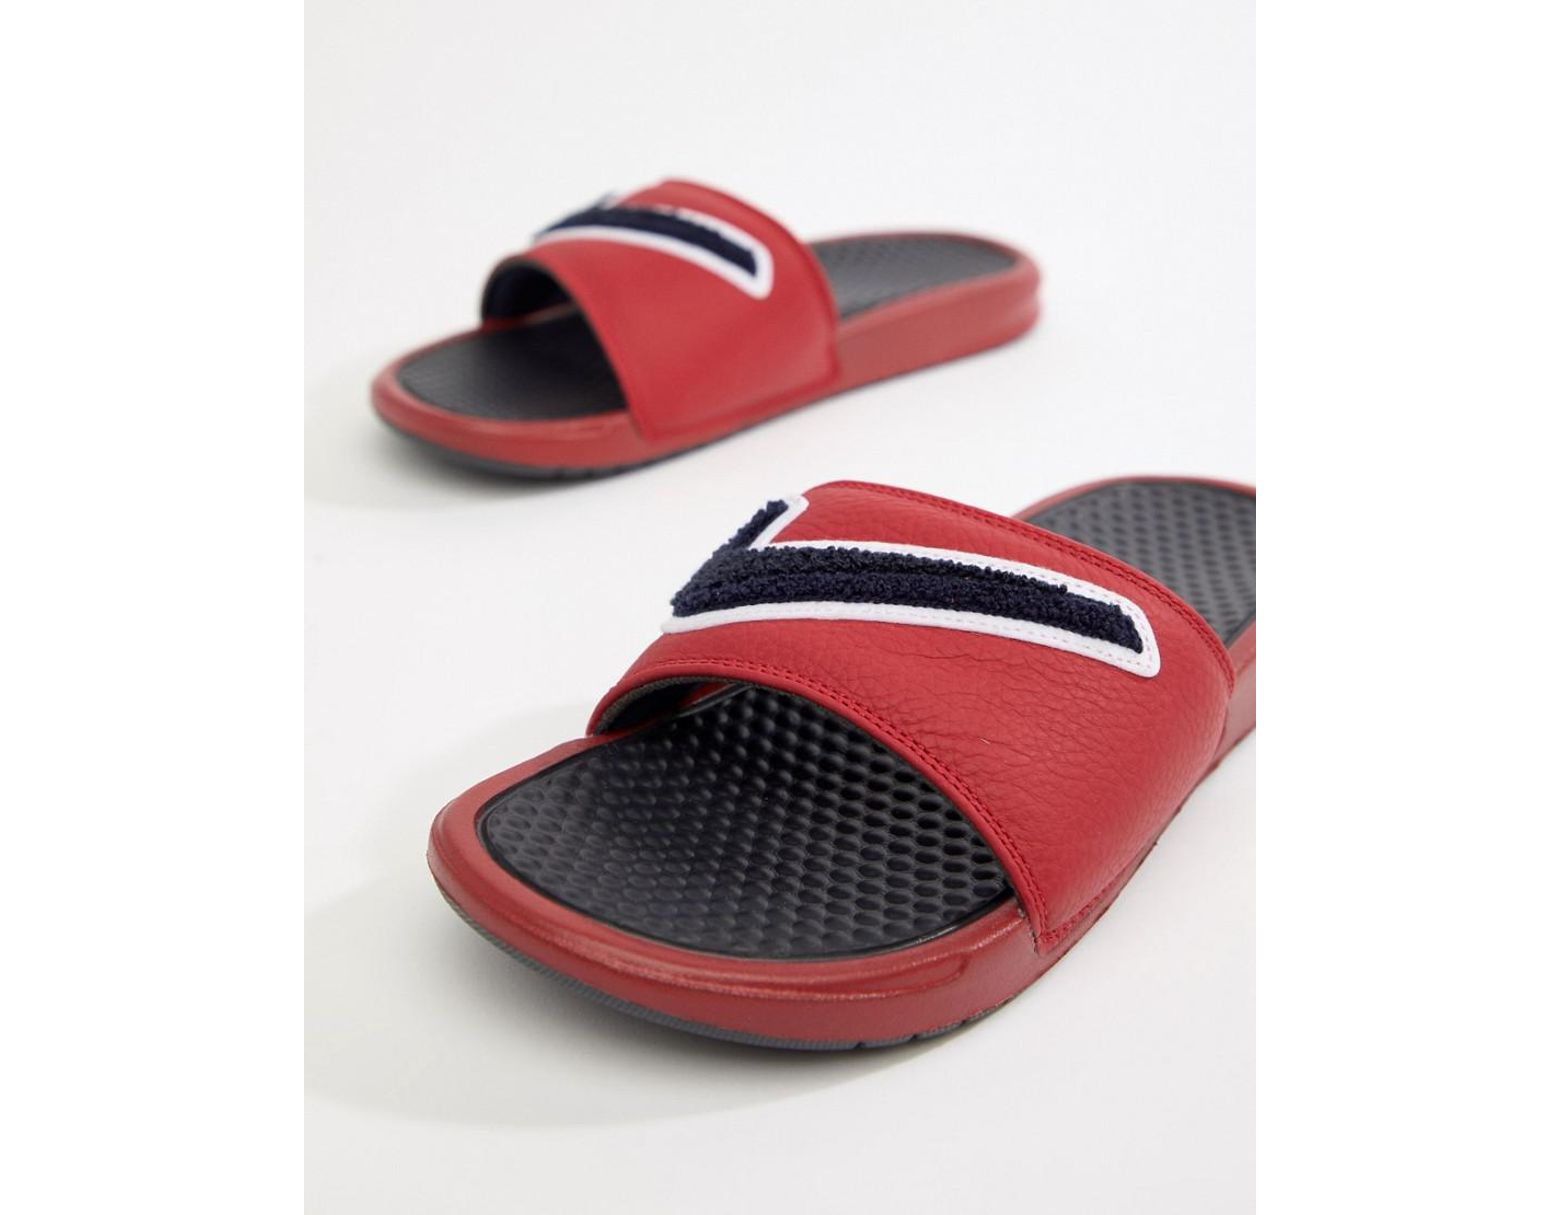 d3549c8a4 Nike Benassi Jdi Chenille Sliders In Red Ao2805-600 in Red for Men - Lyst